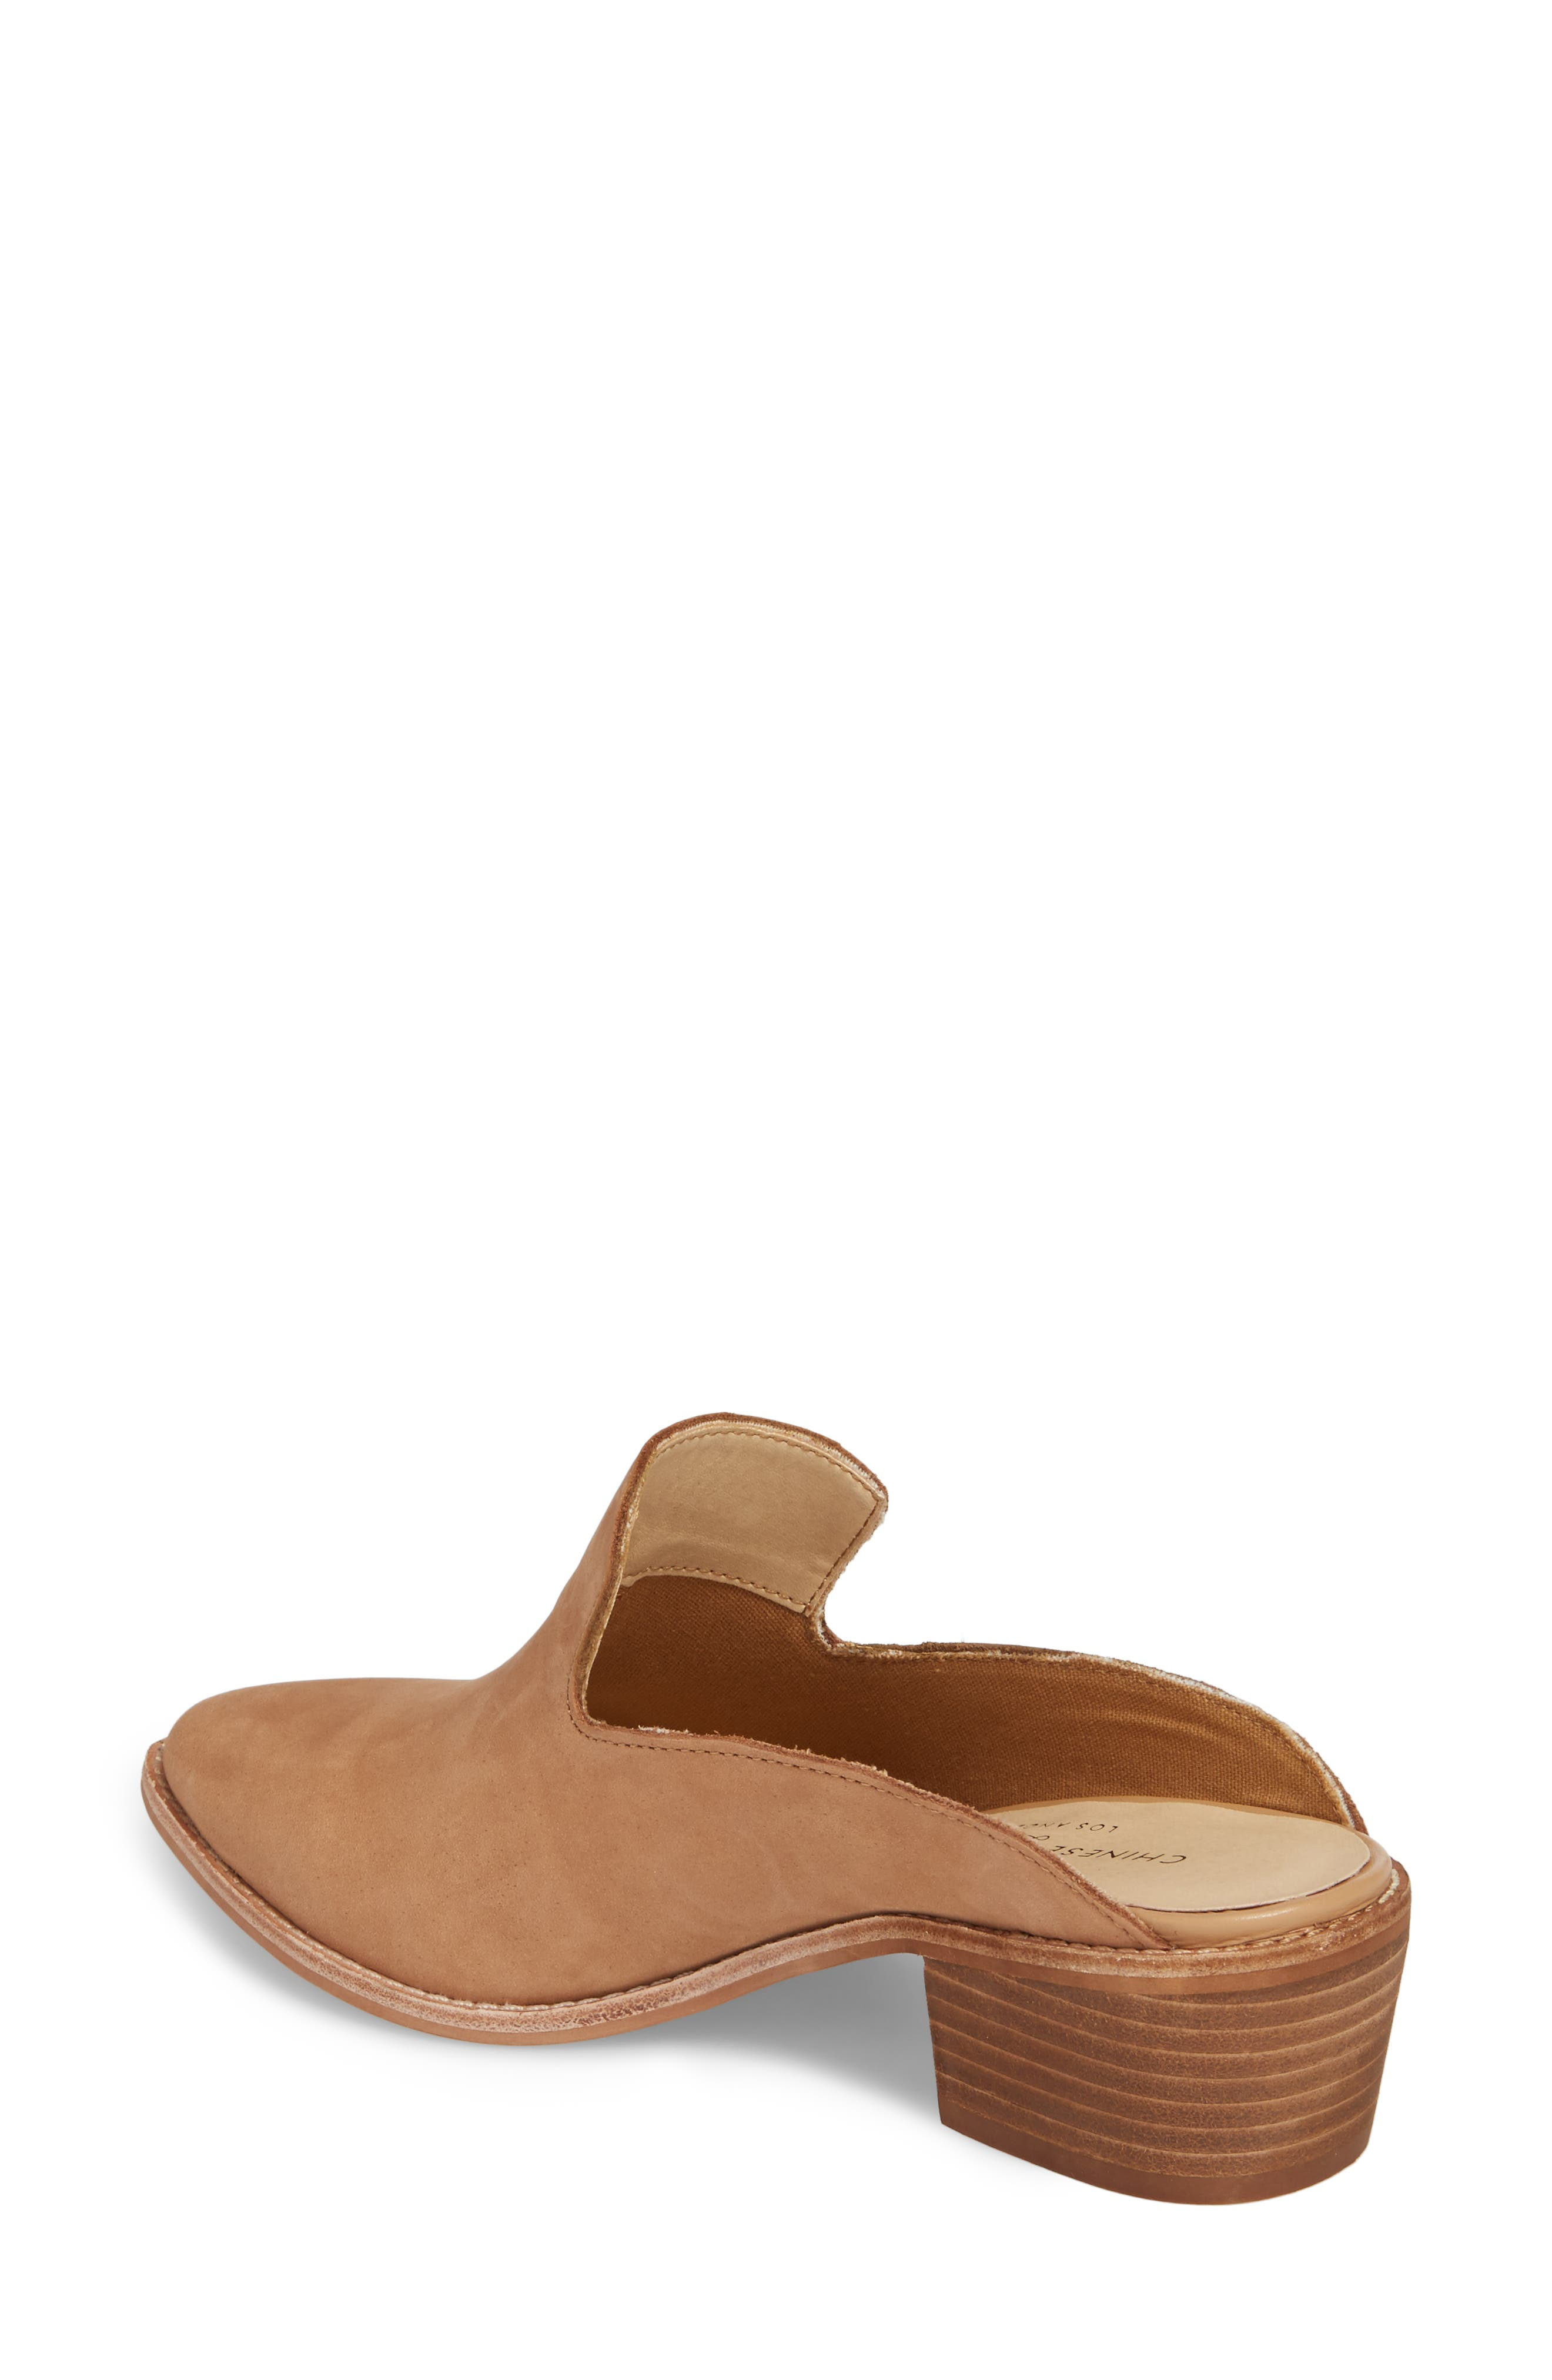 Marnie Loafer Mule,                             Alternate thumbnail 2, color,                             Natural